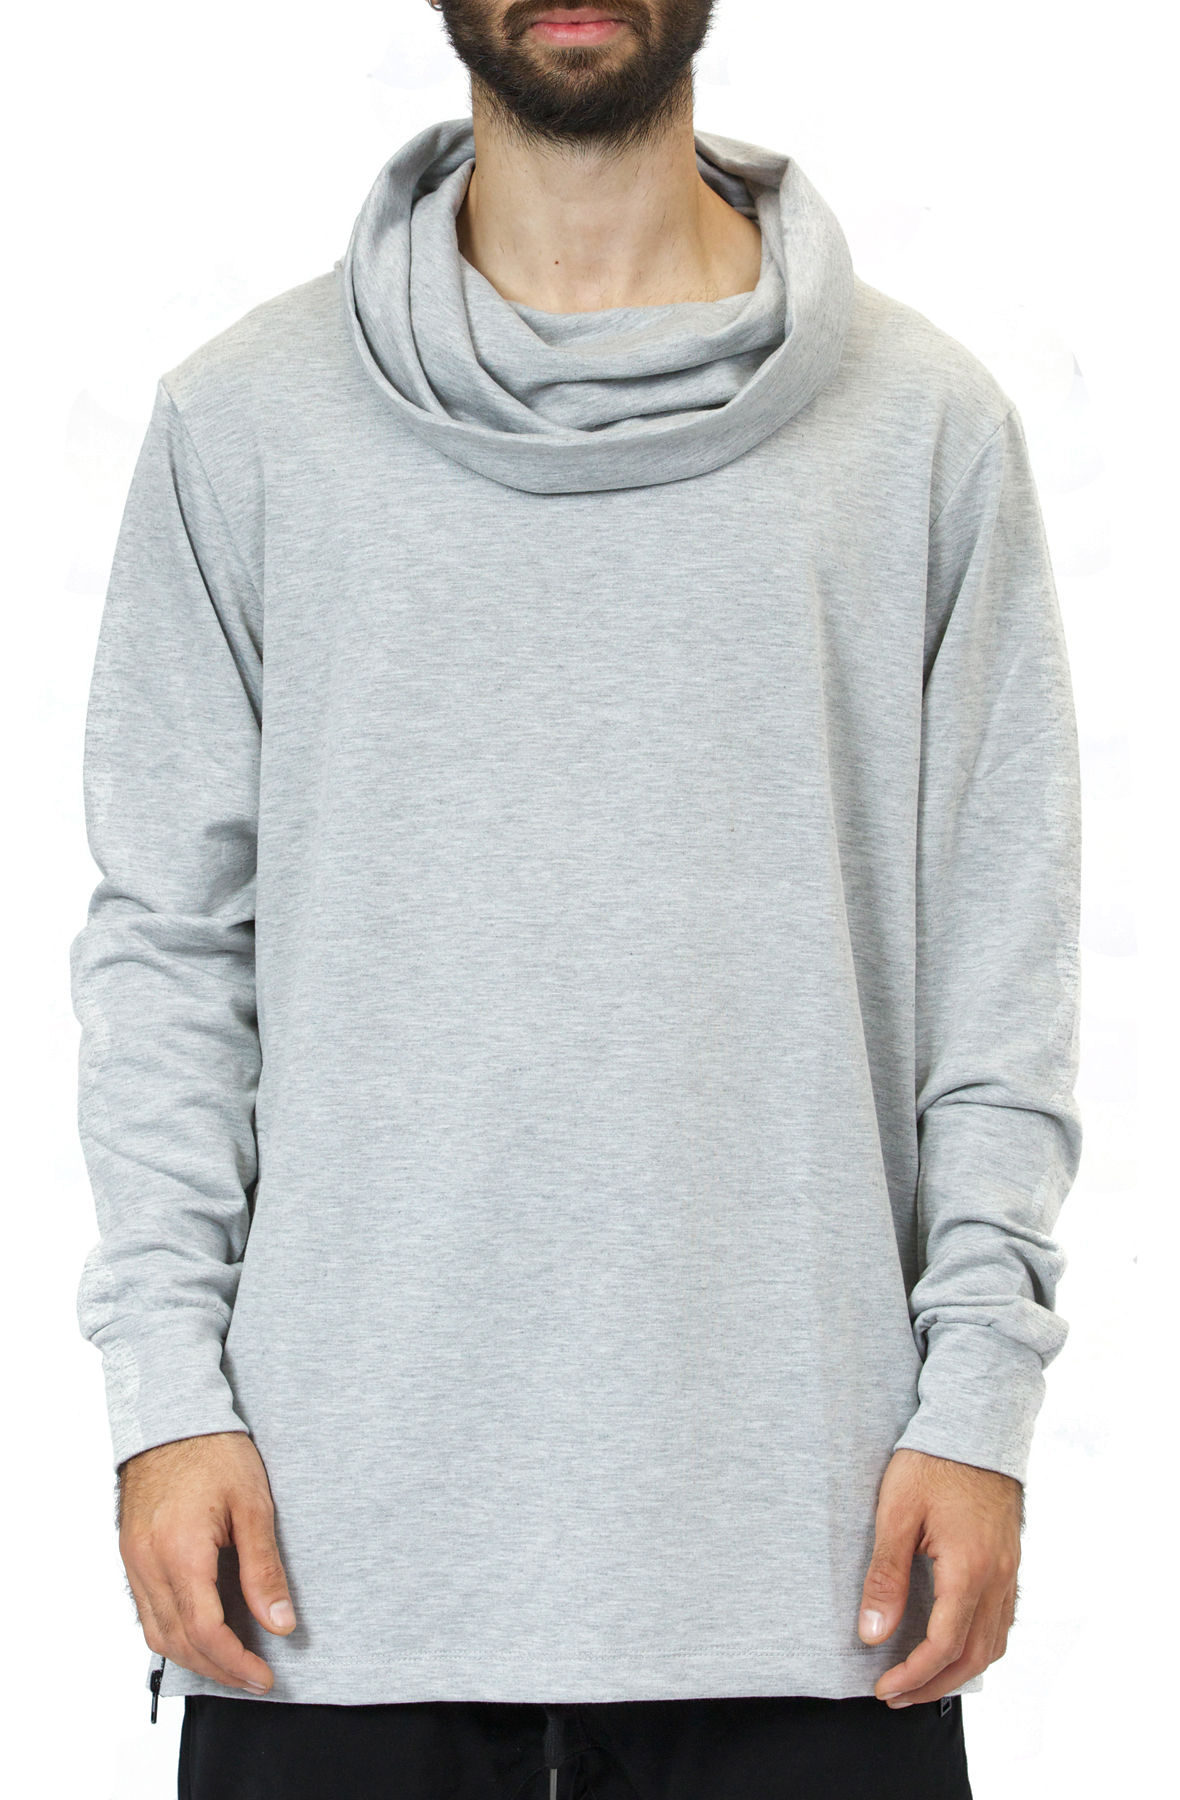 Image of Cowl Neck French Terry Top With Contrast Zipper